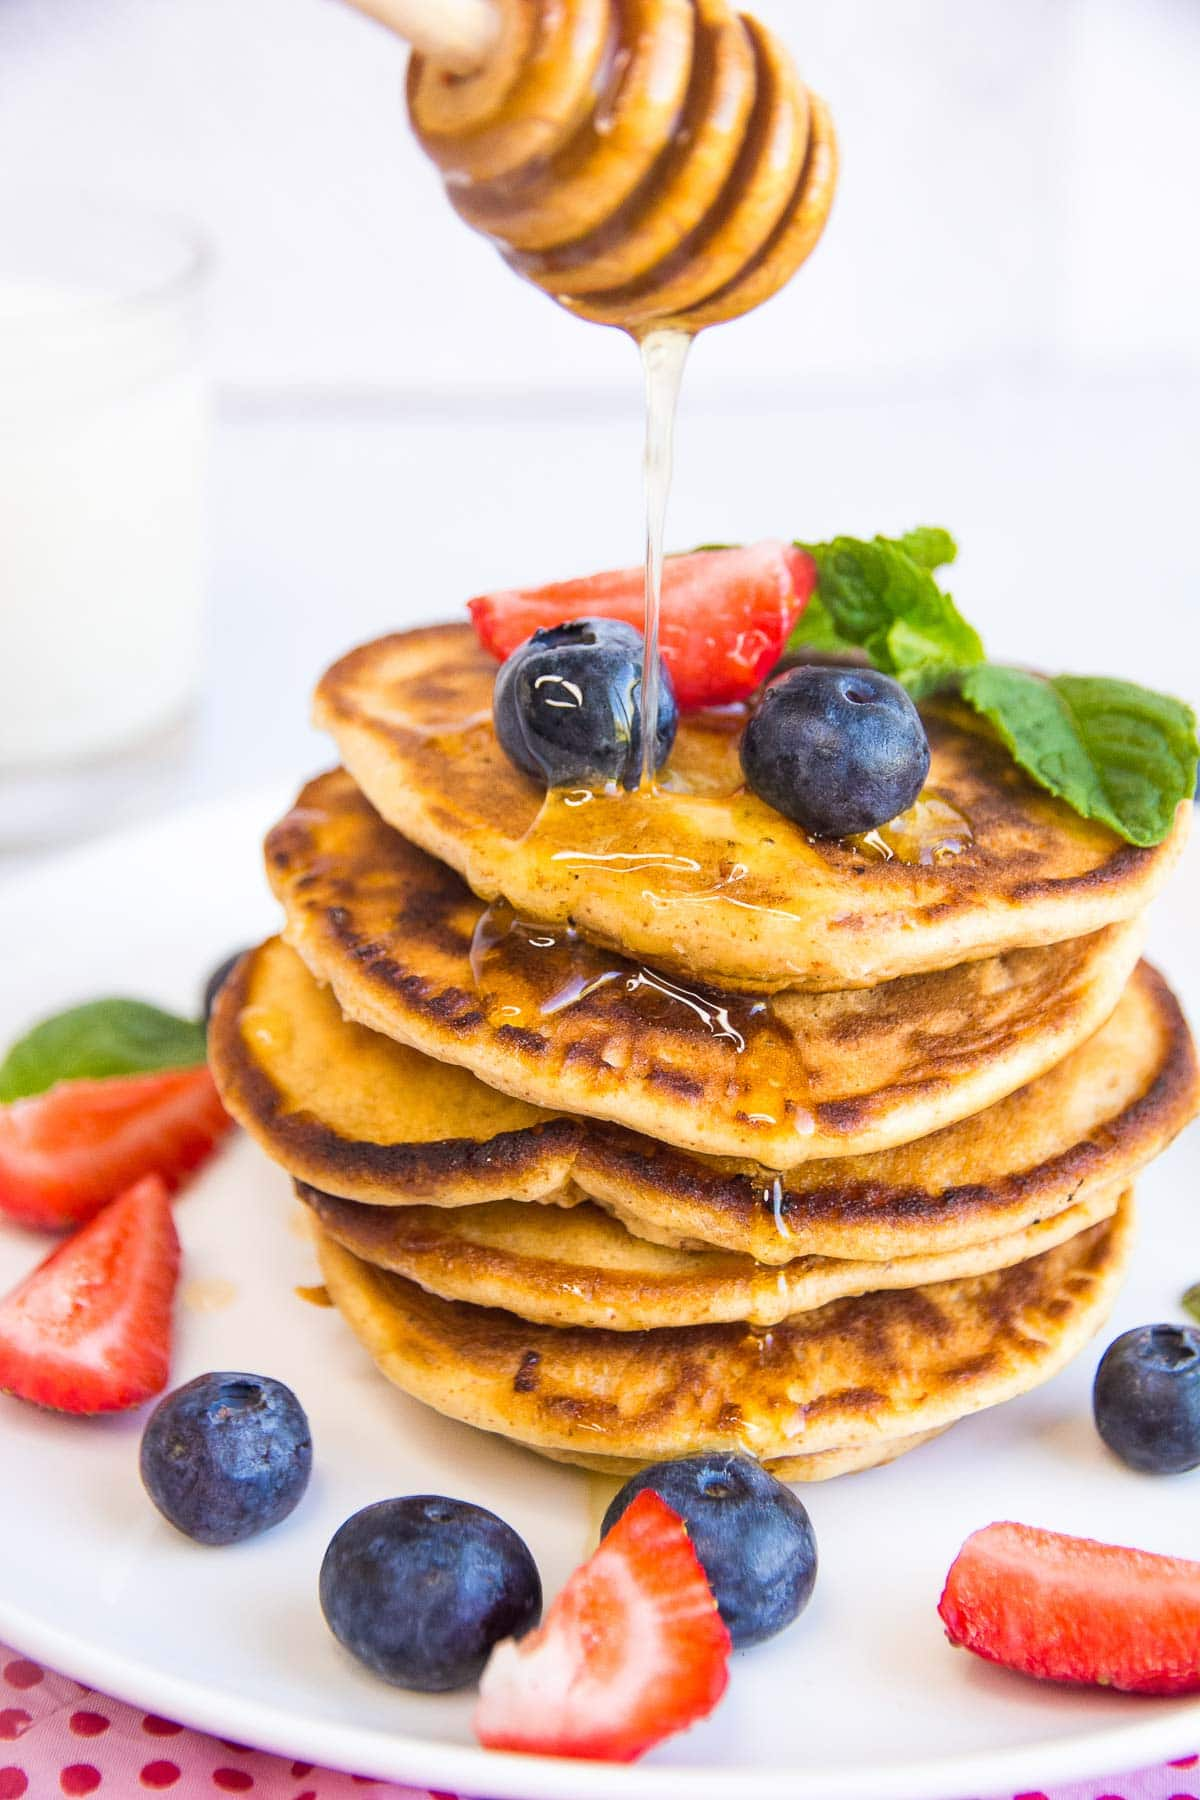 Sugar-free syrup being poured on a stack of keto almond flour pancakes with fresh berries.